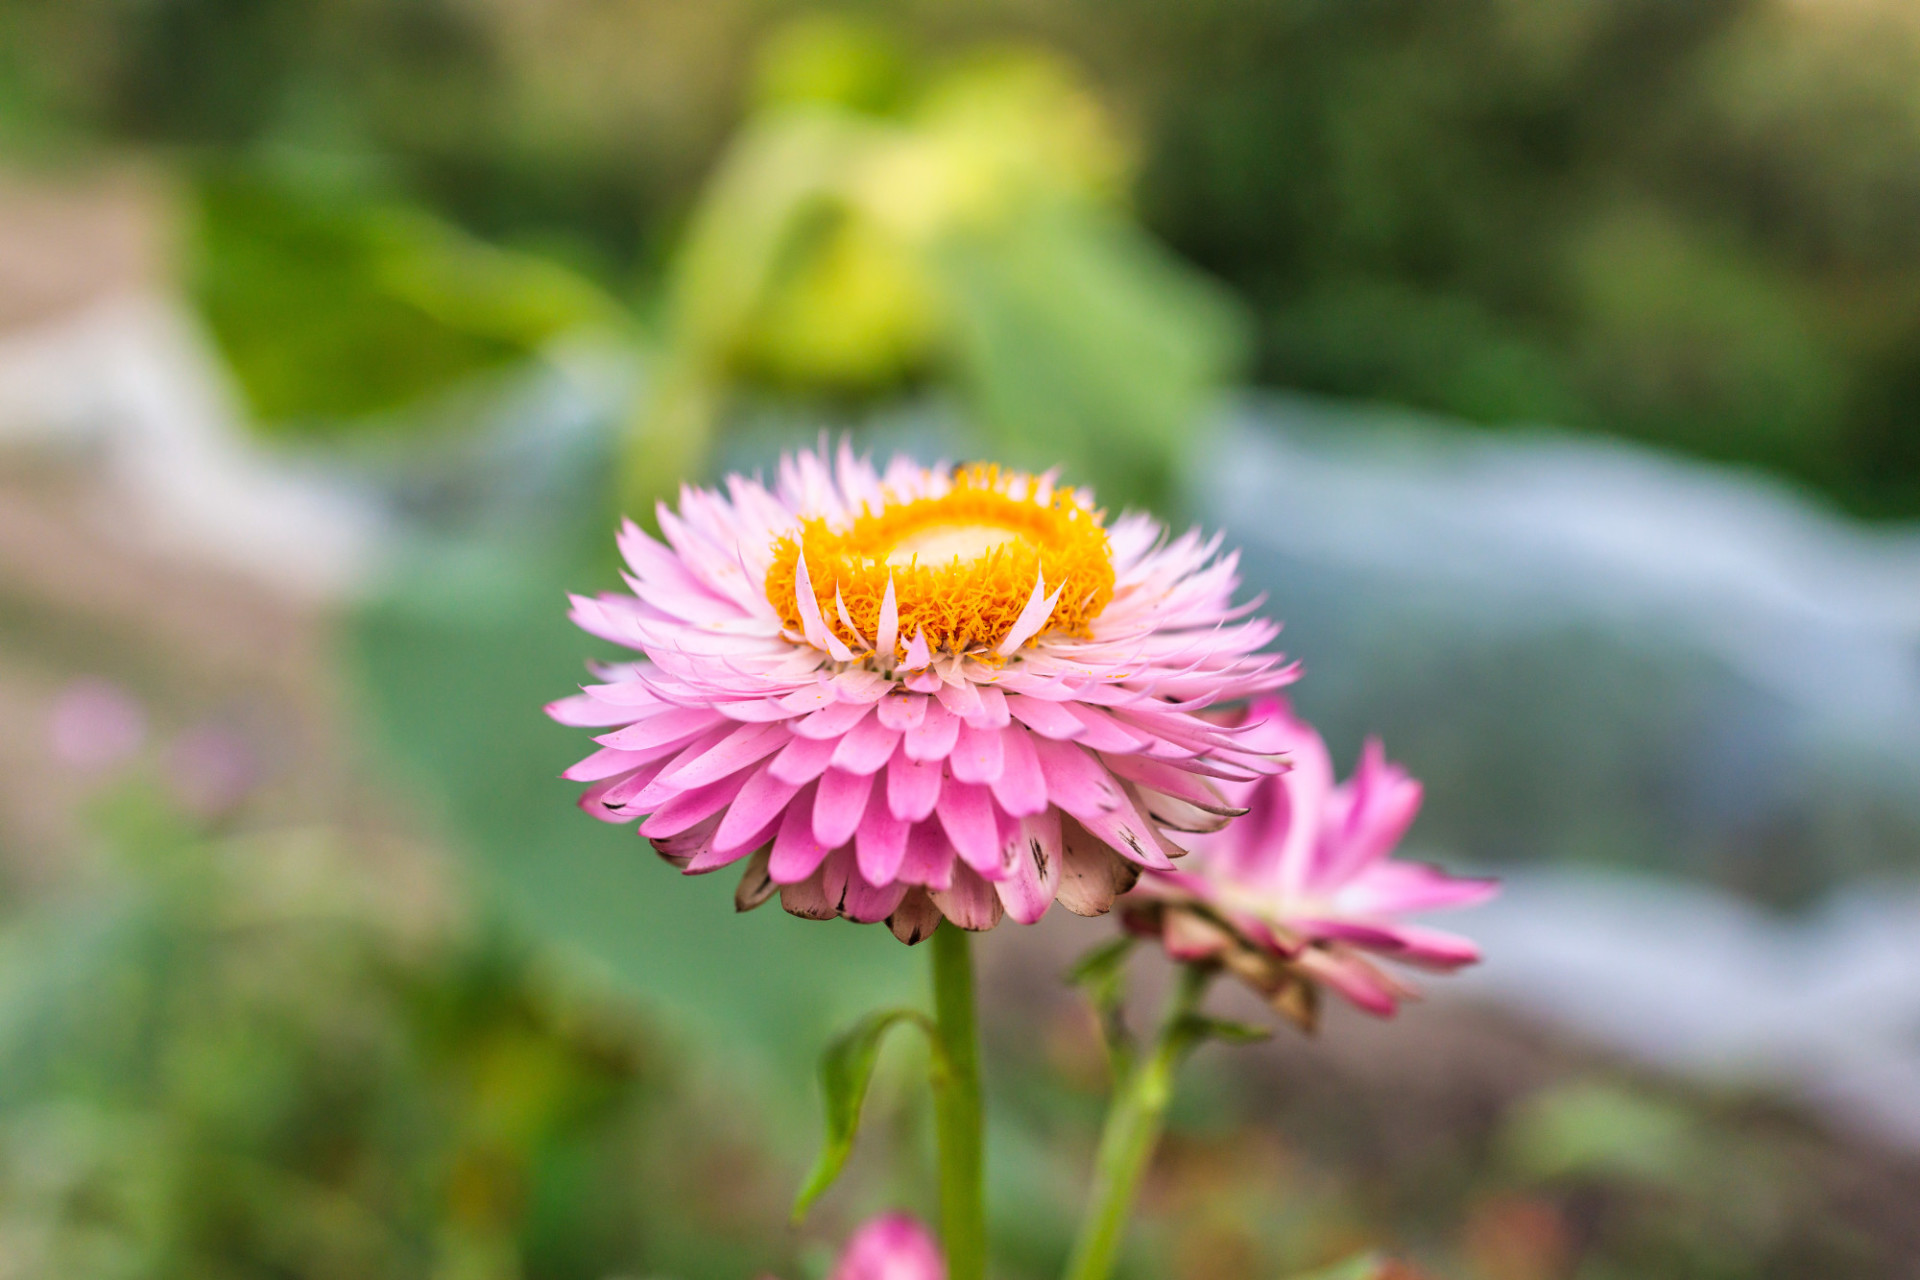 Pink Aster Flower with Yellow Inner